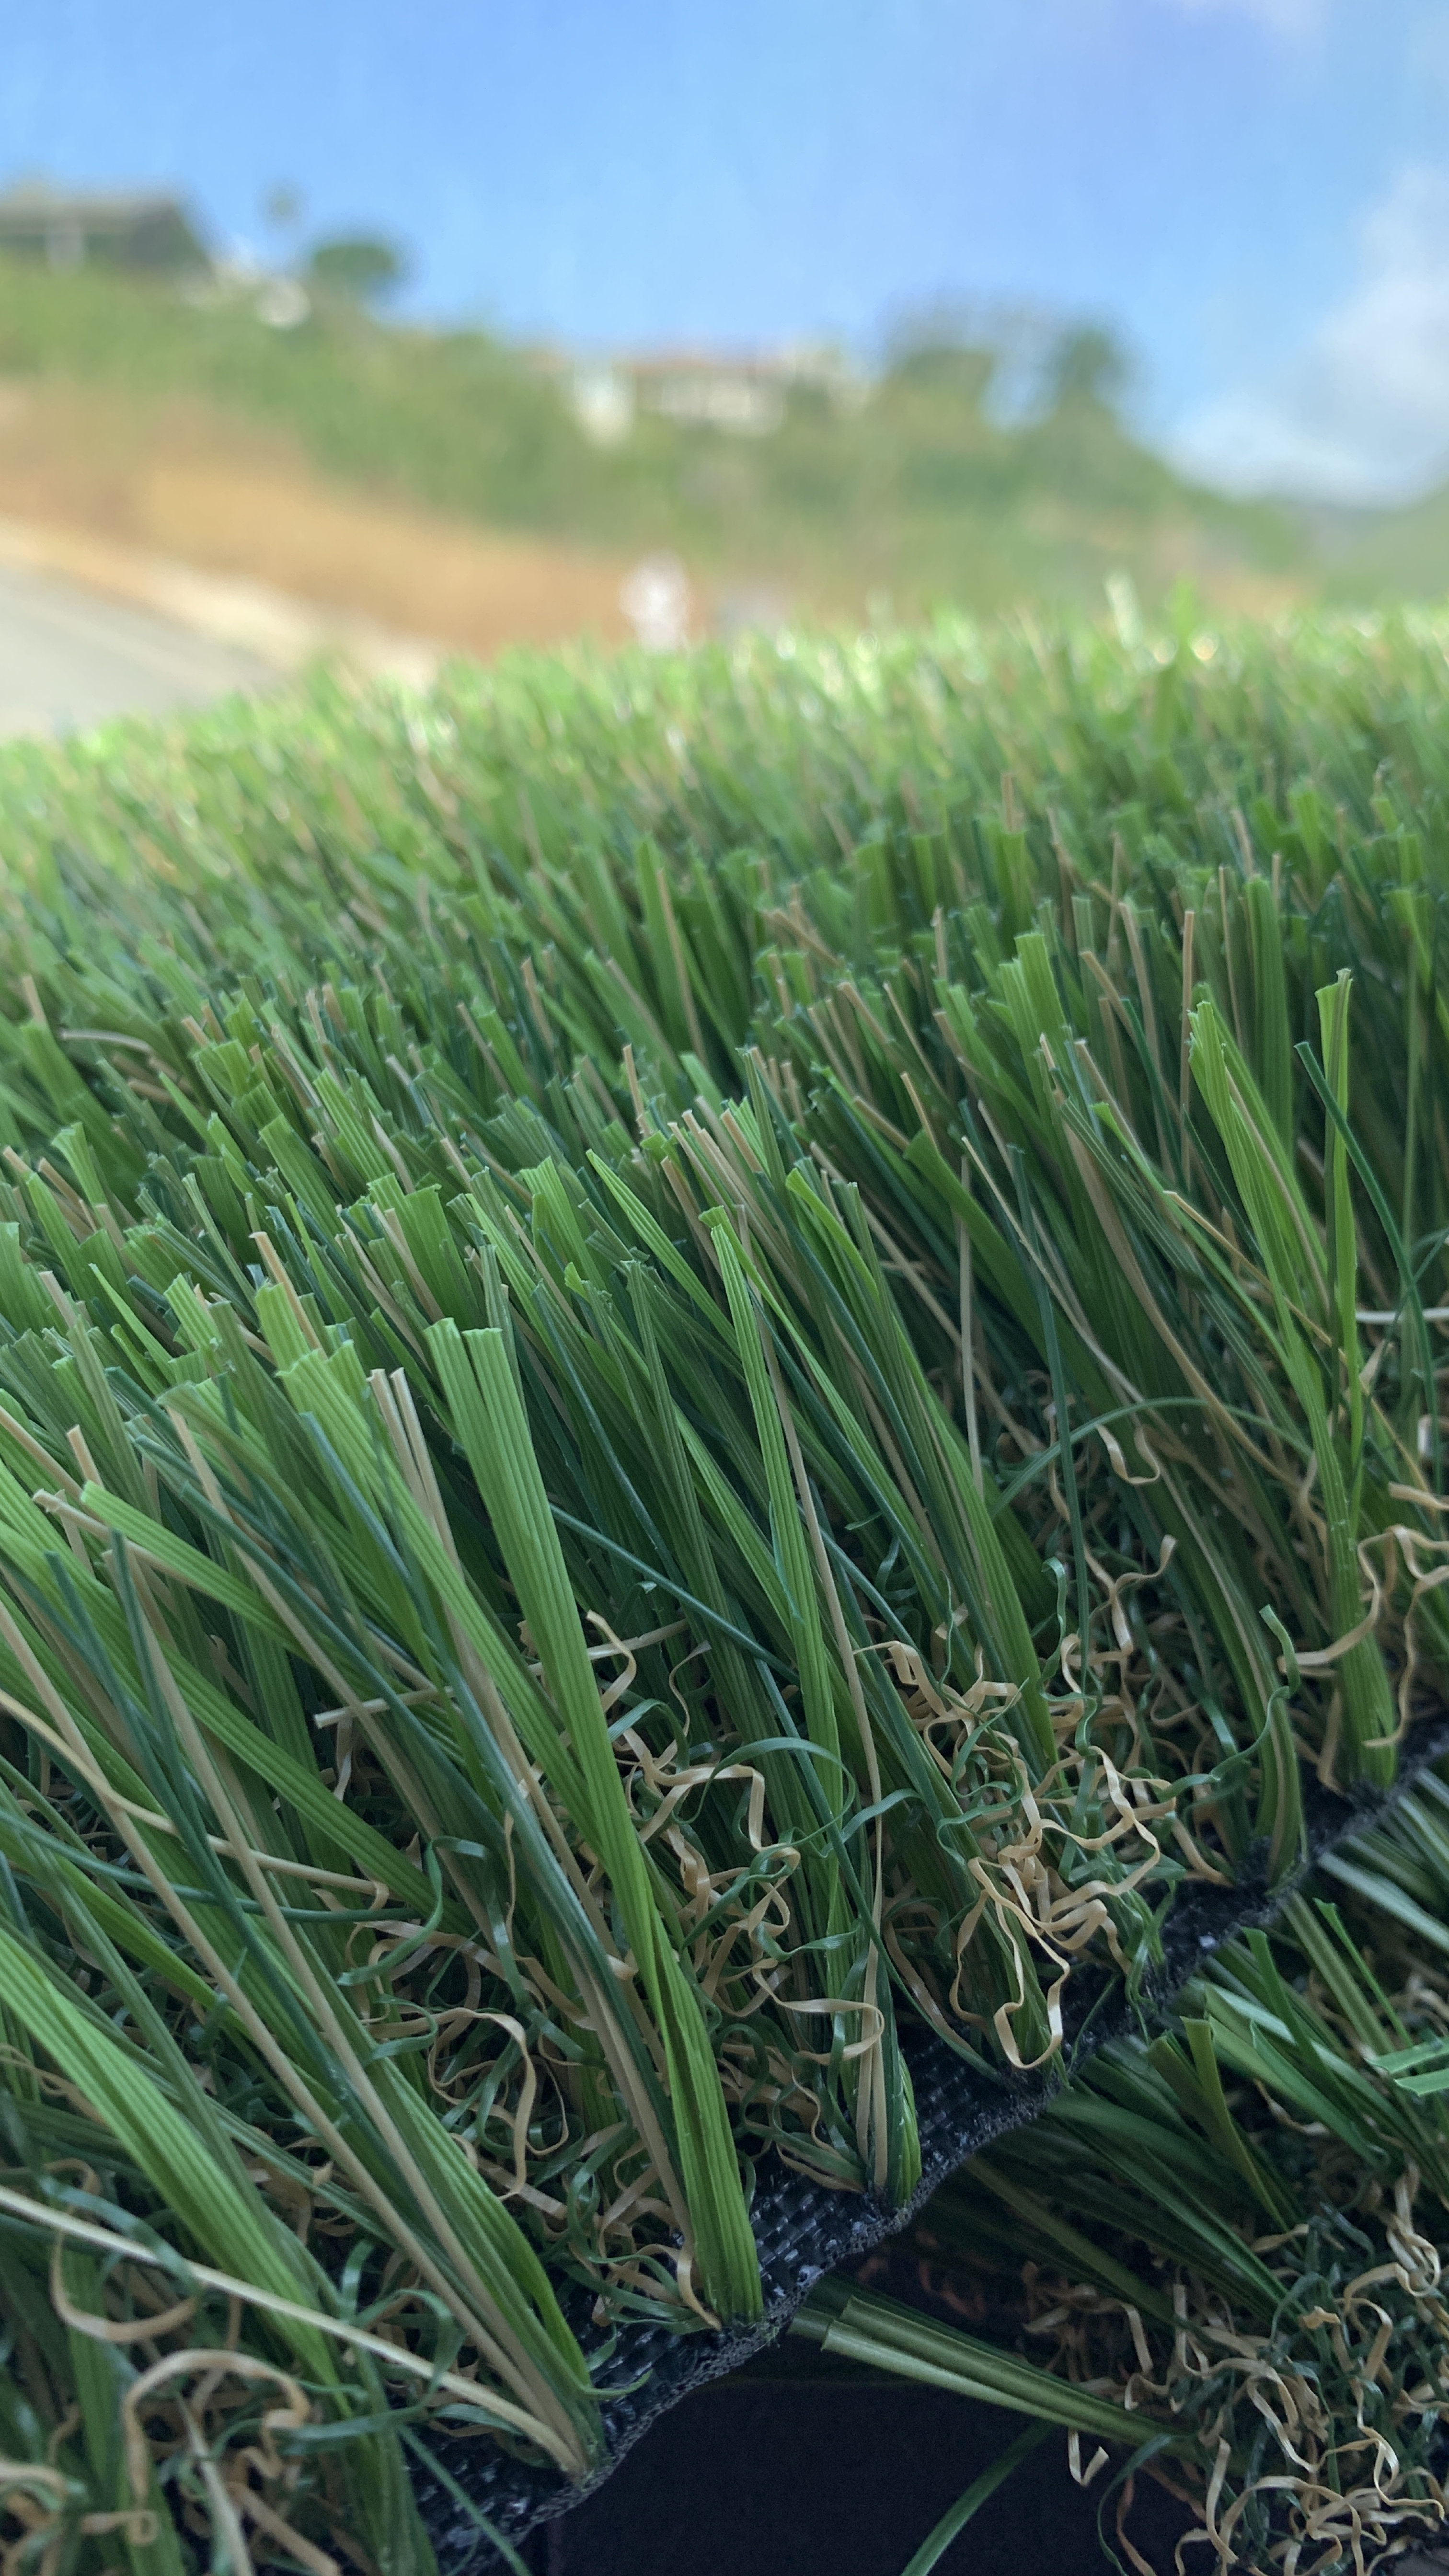 W Blade-80 artificial turf,synthetic turf,artificial turf installation,how to install artificial turf,used artificial turf,real grass,most realistic artificial grass,realistic artificial grass,artificial grass,fake grass,synthetic grass,grass carpet,artificial grass rug,artificial turf,synthetic turf,artificial turf installation,how to install artificial turf,used artificial turf